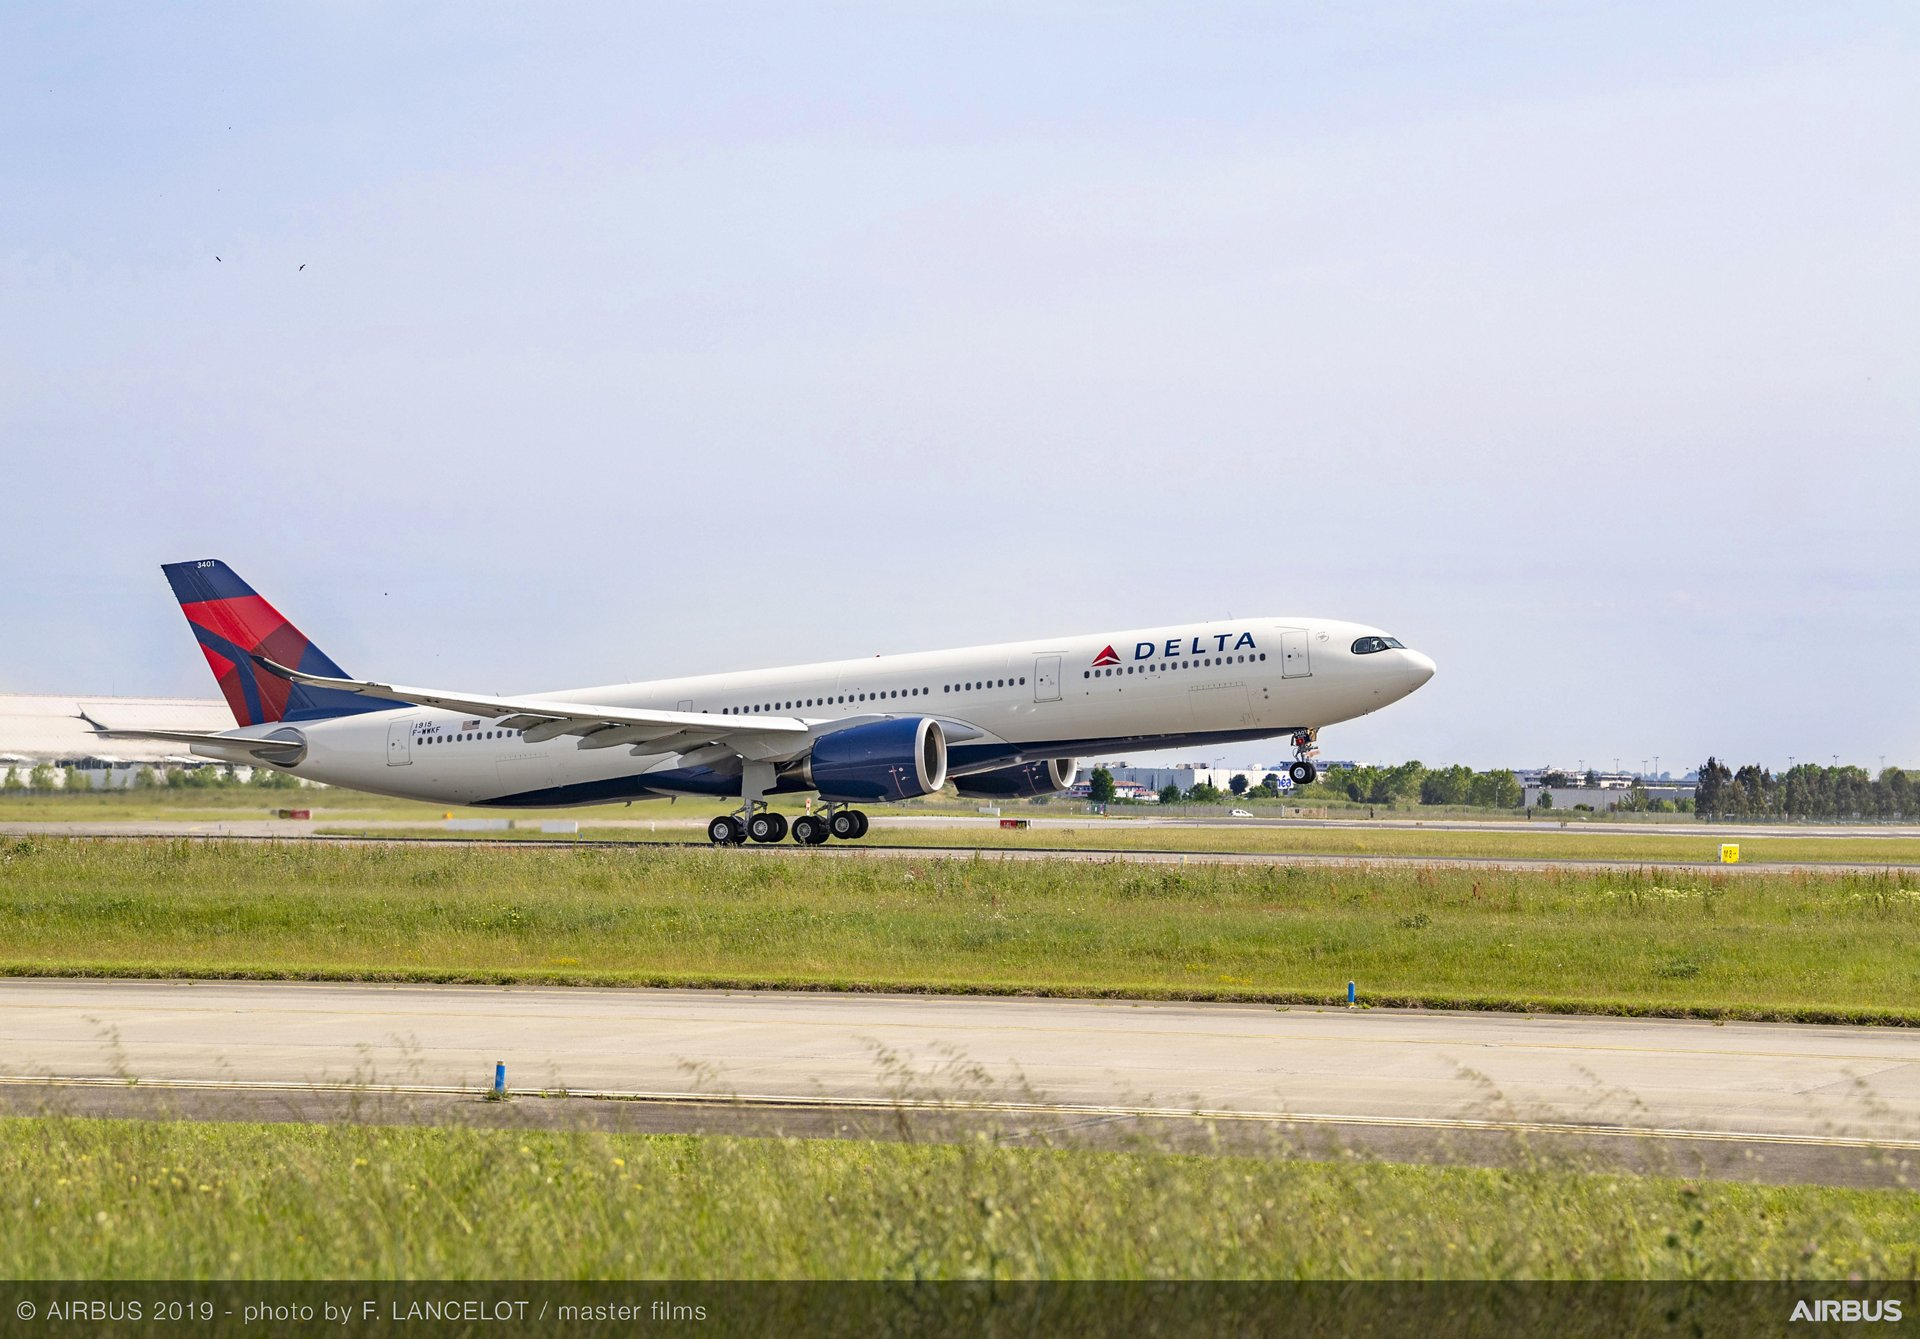 Delta Air Lines took delivery of its first A330-900 – of 35 A330neo Family aircraft the carrier has on order – featuring new fuel-efficient engines, aerodynamic improvements and the advanced Airspace by Airbus cabin